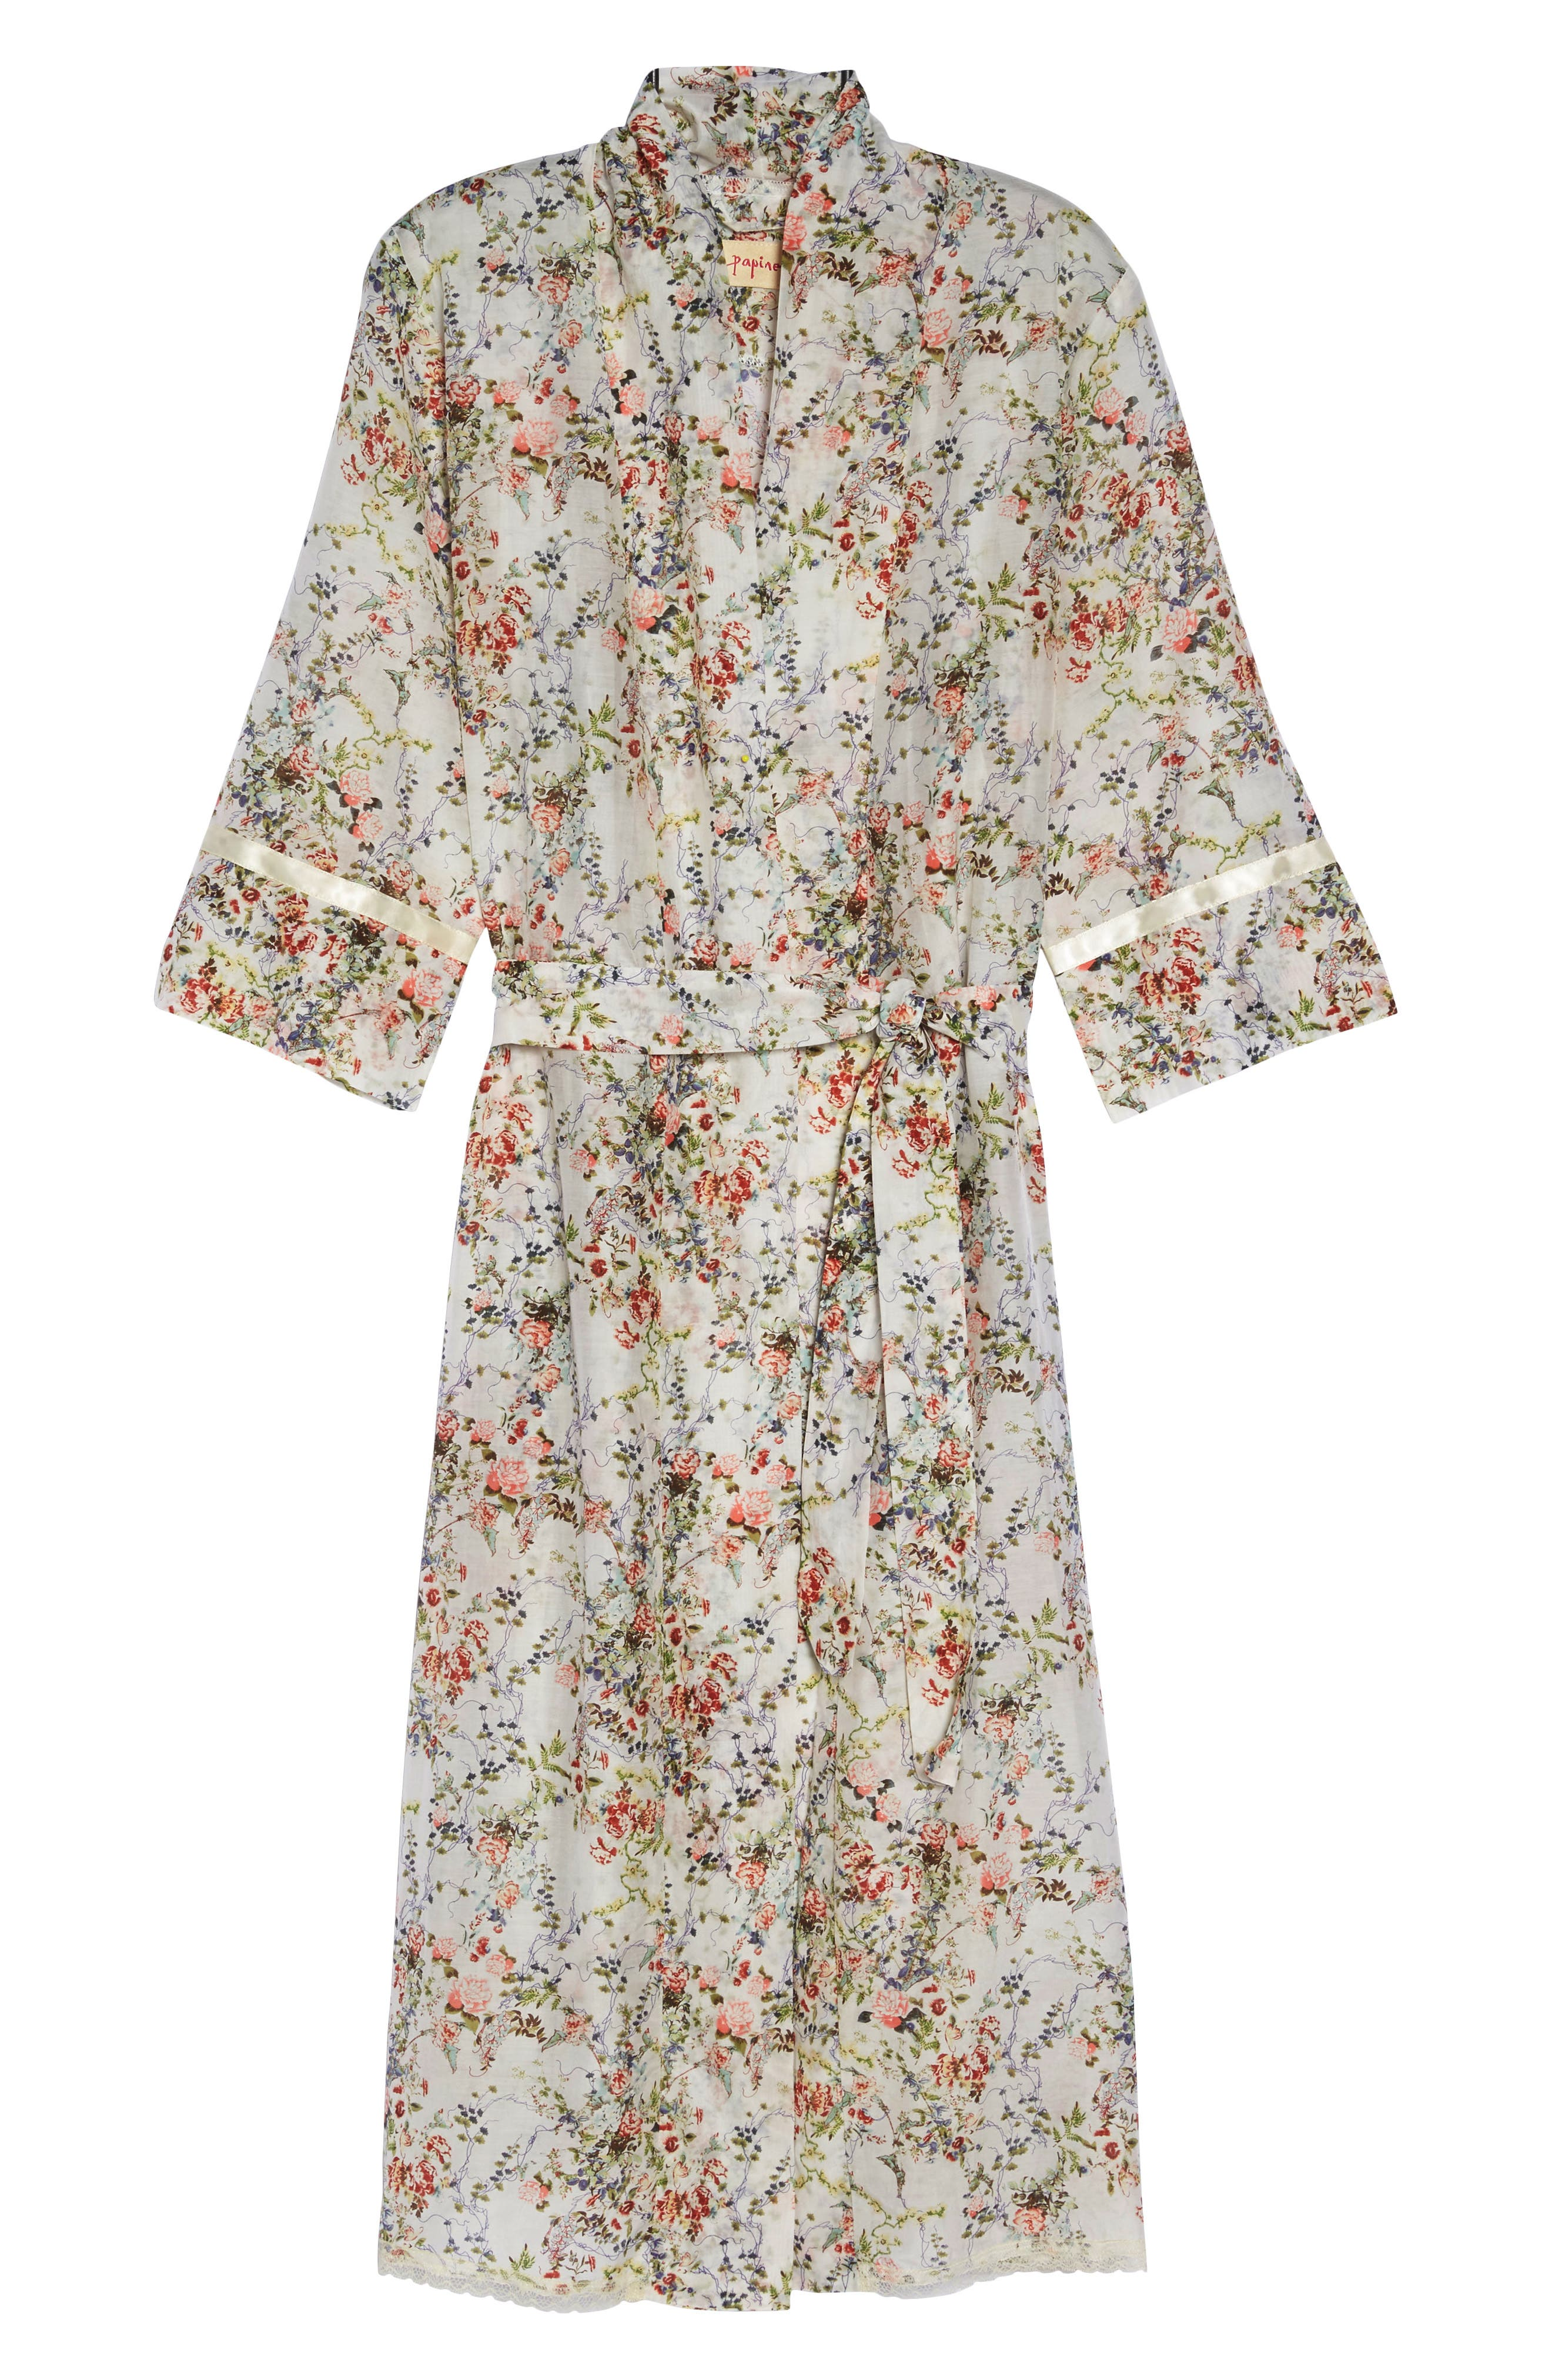 Yolly Floral Cotton & Silk Robe,                             Alternate thumbnail 4, color,                             Ivory Floral